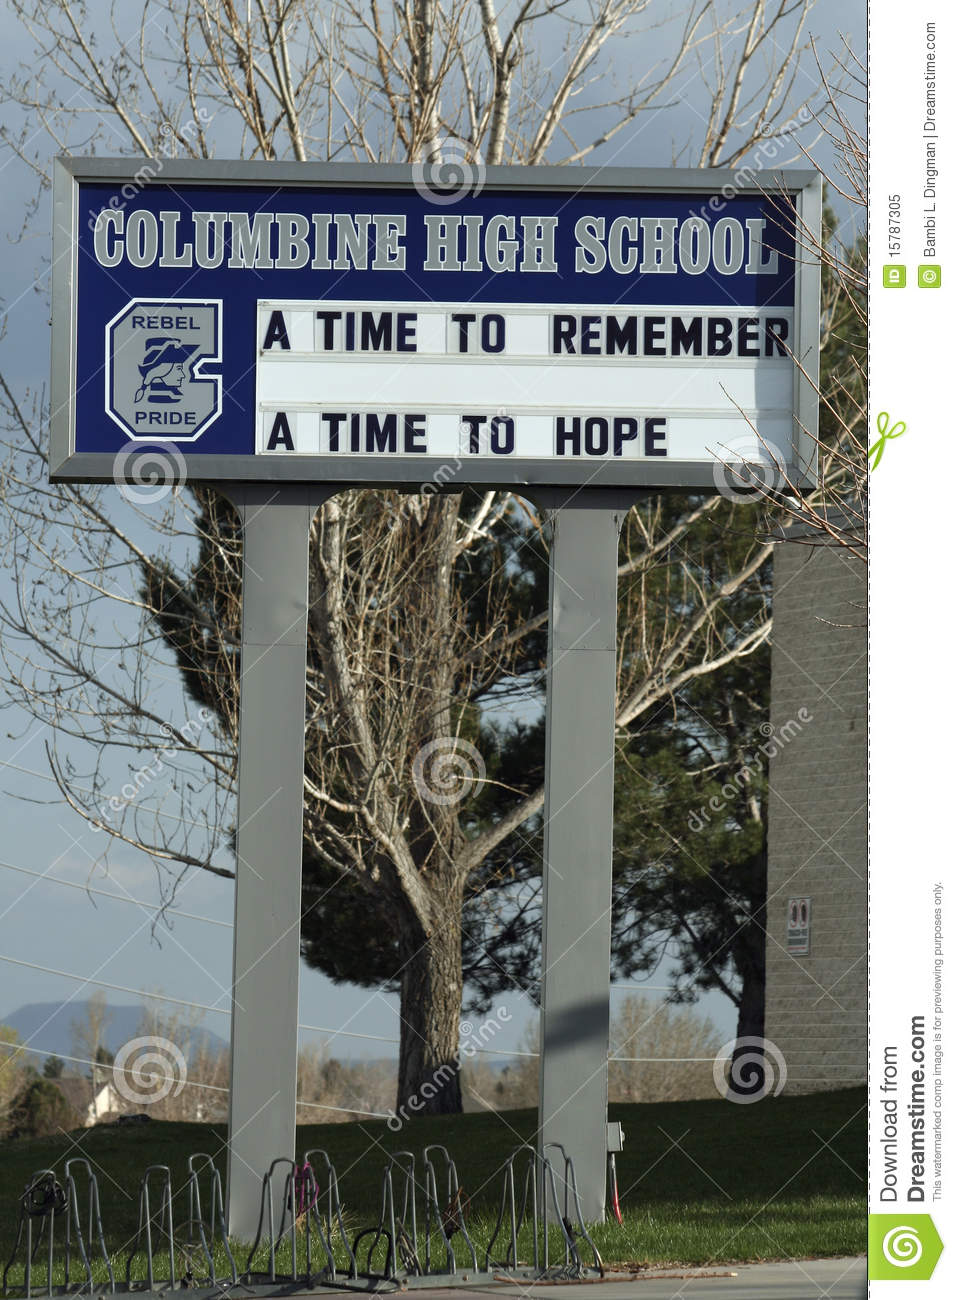 an analysis of colombine high school Joffe, mara (2014) an analysis of the media's coverage of the columbine high school and sandy hook elementary school shootings undergraduate thesis, under the.